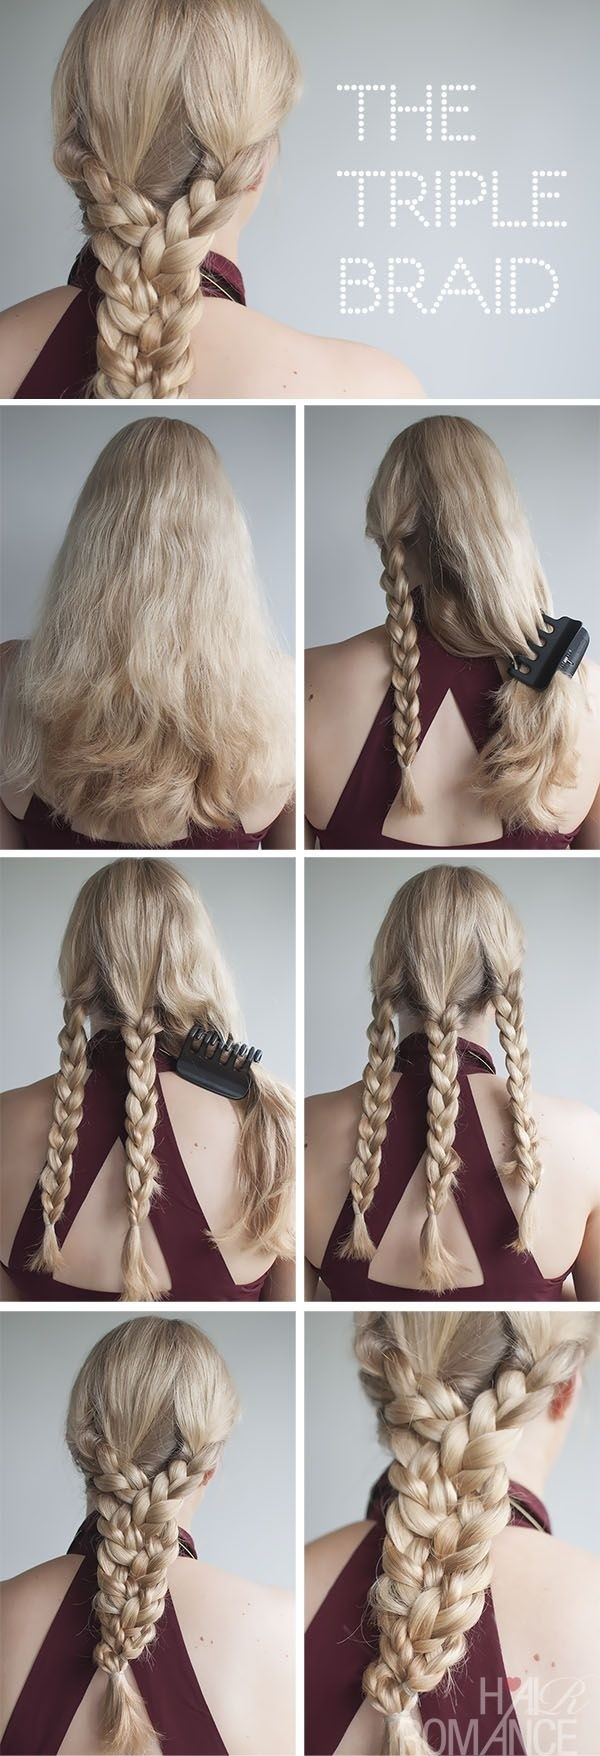 Braided Hairstyle Tutorial for Summer